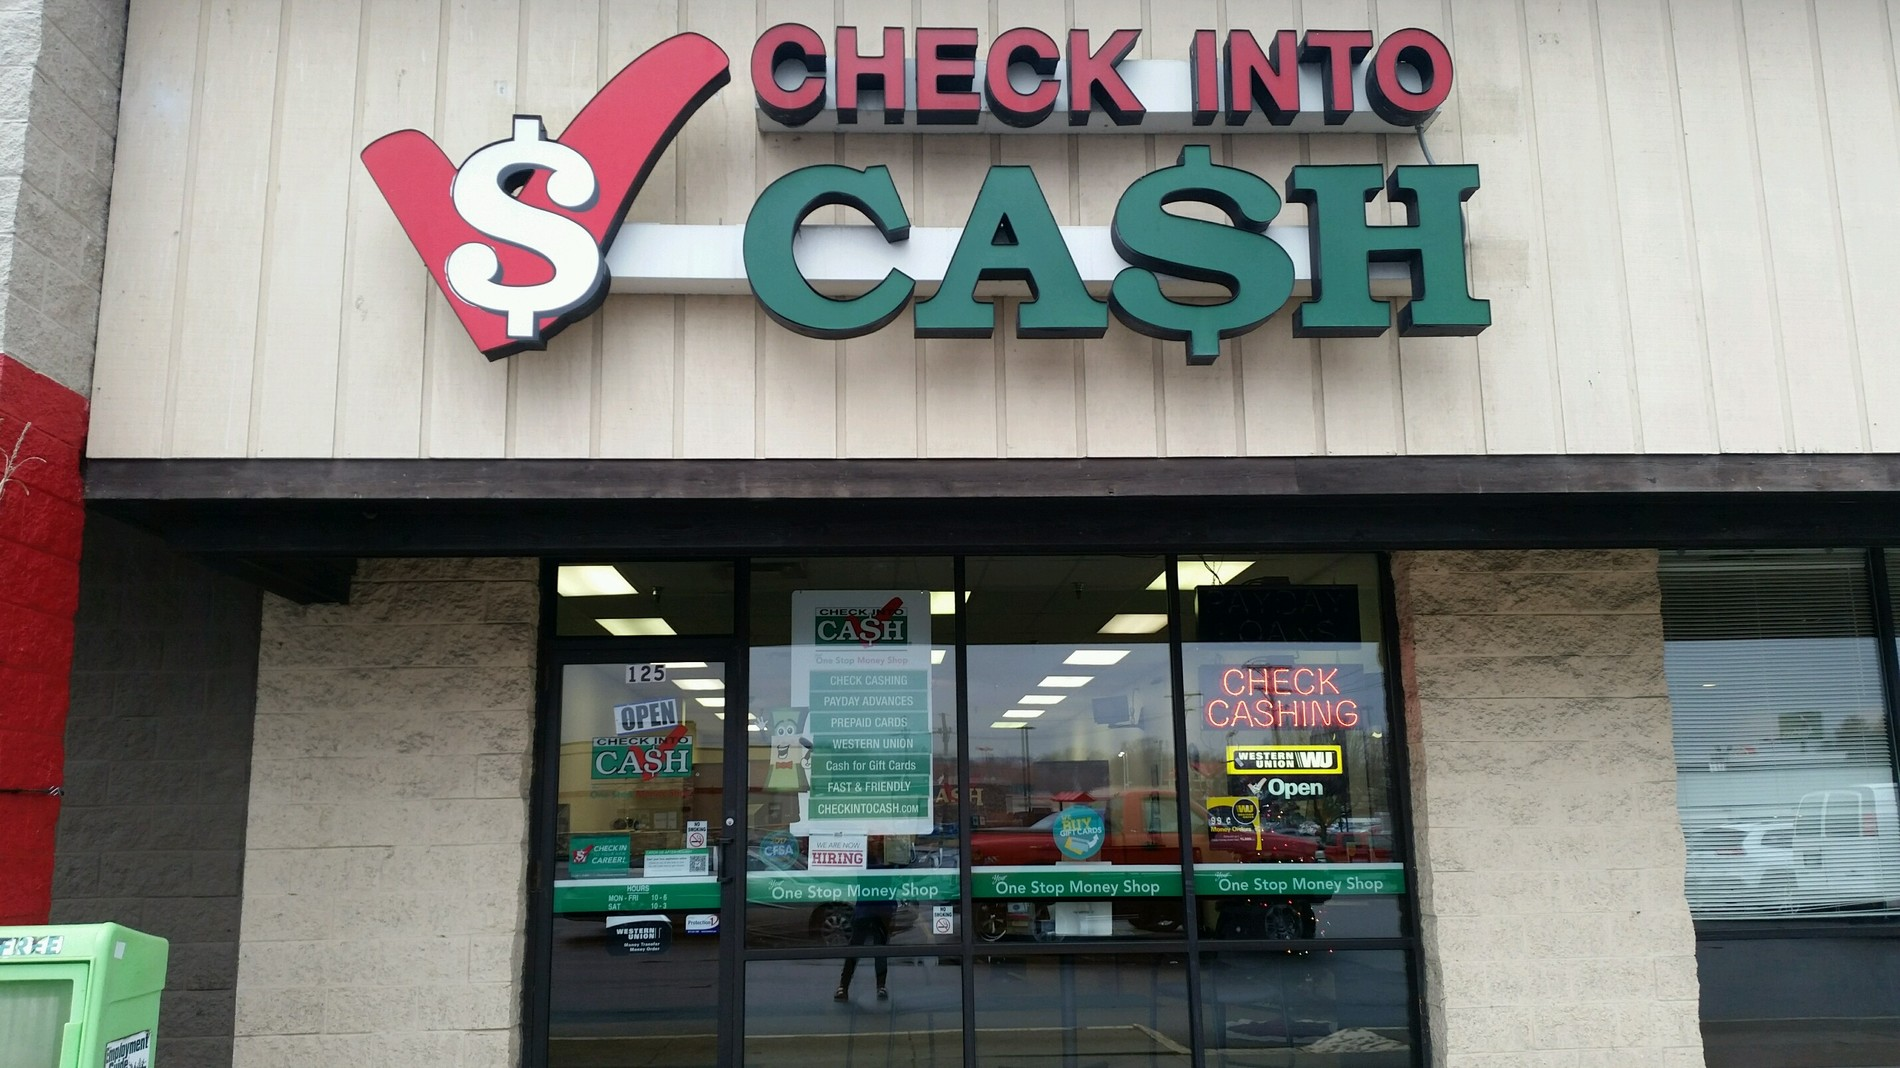 Cold cash today payday loans picture 6